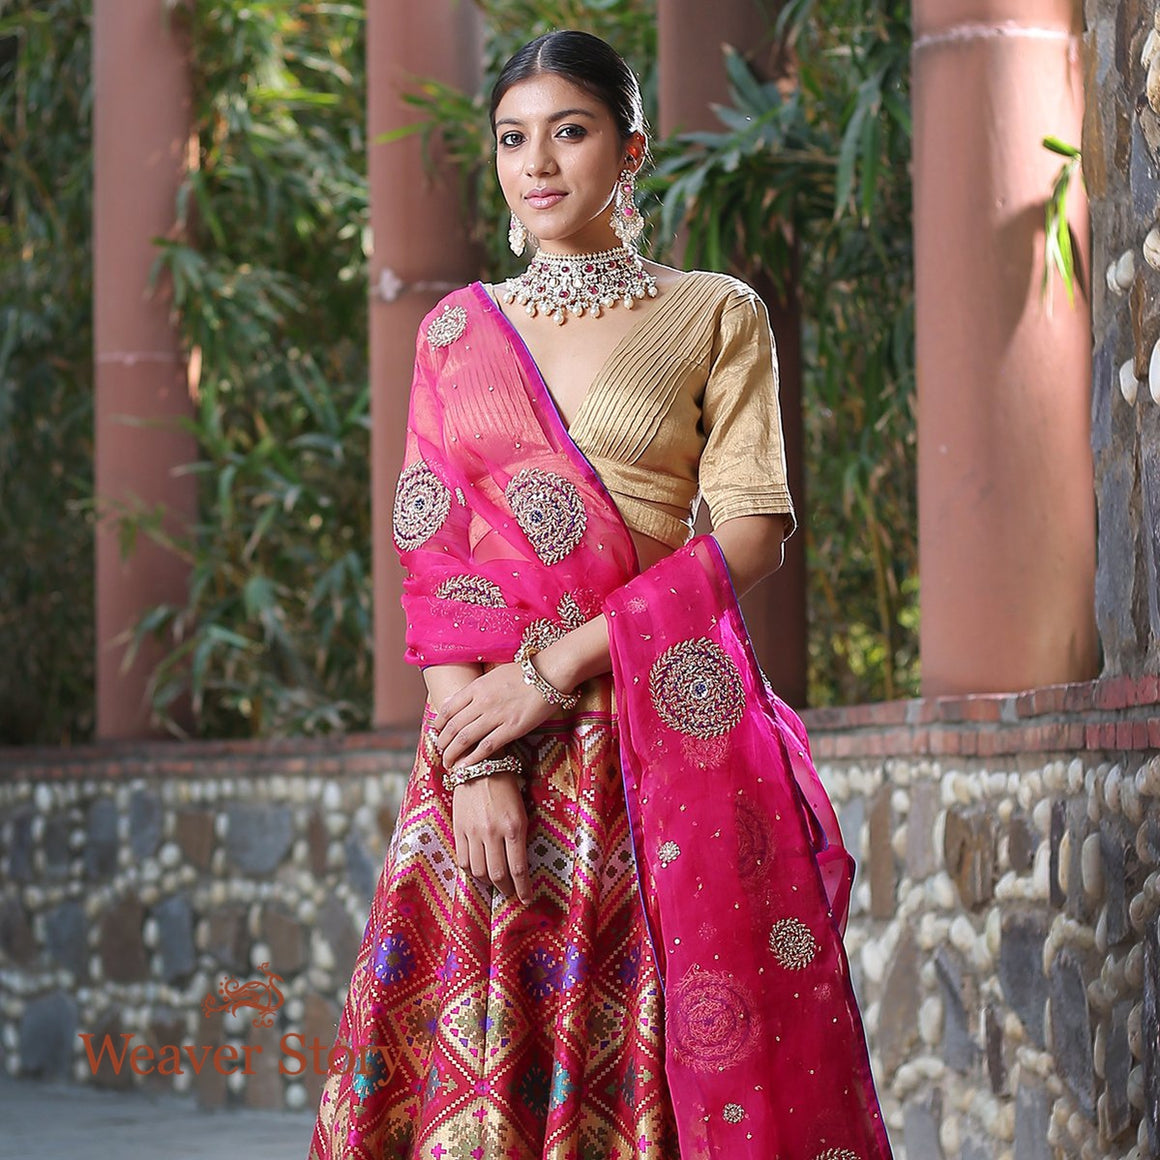 Handwoven Banarasi Lehenga in Maroon with Patola Inspired Weave